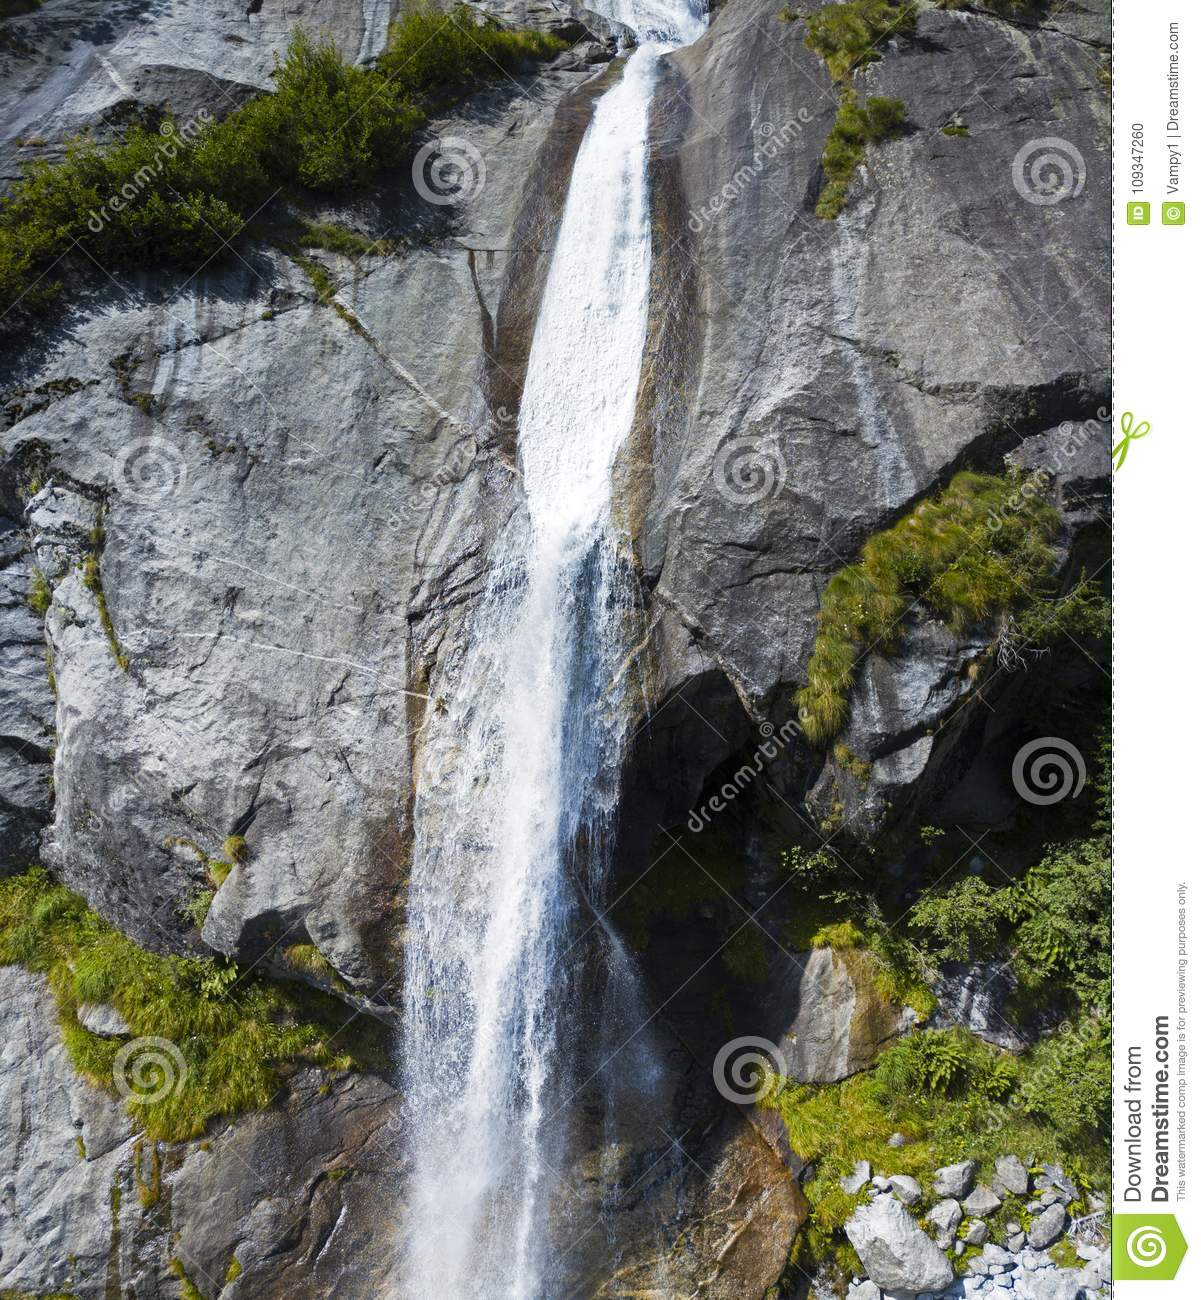 Aerial view of a waterfall in Val di Mello, a green valley surrounded by granite mountains and forest trees. Val Masino. Italy